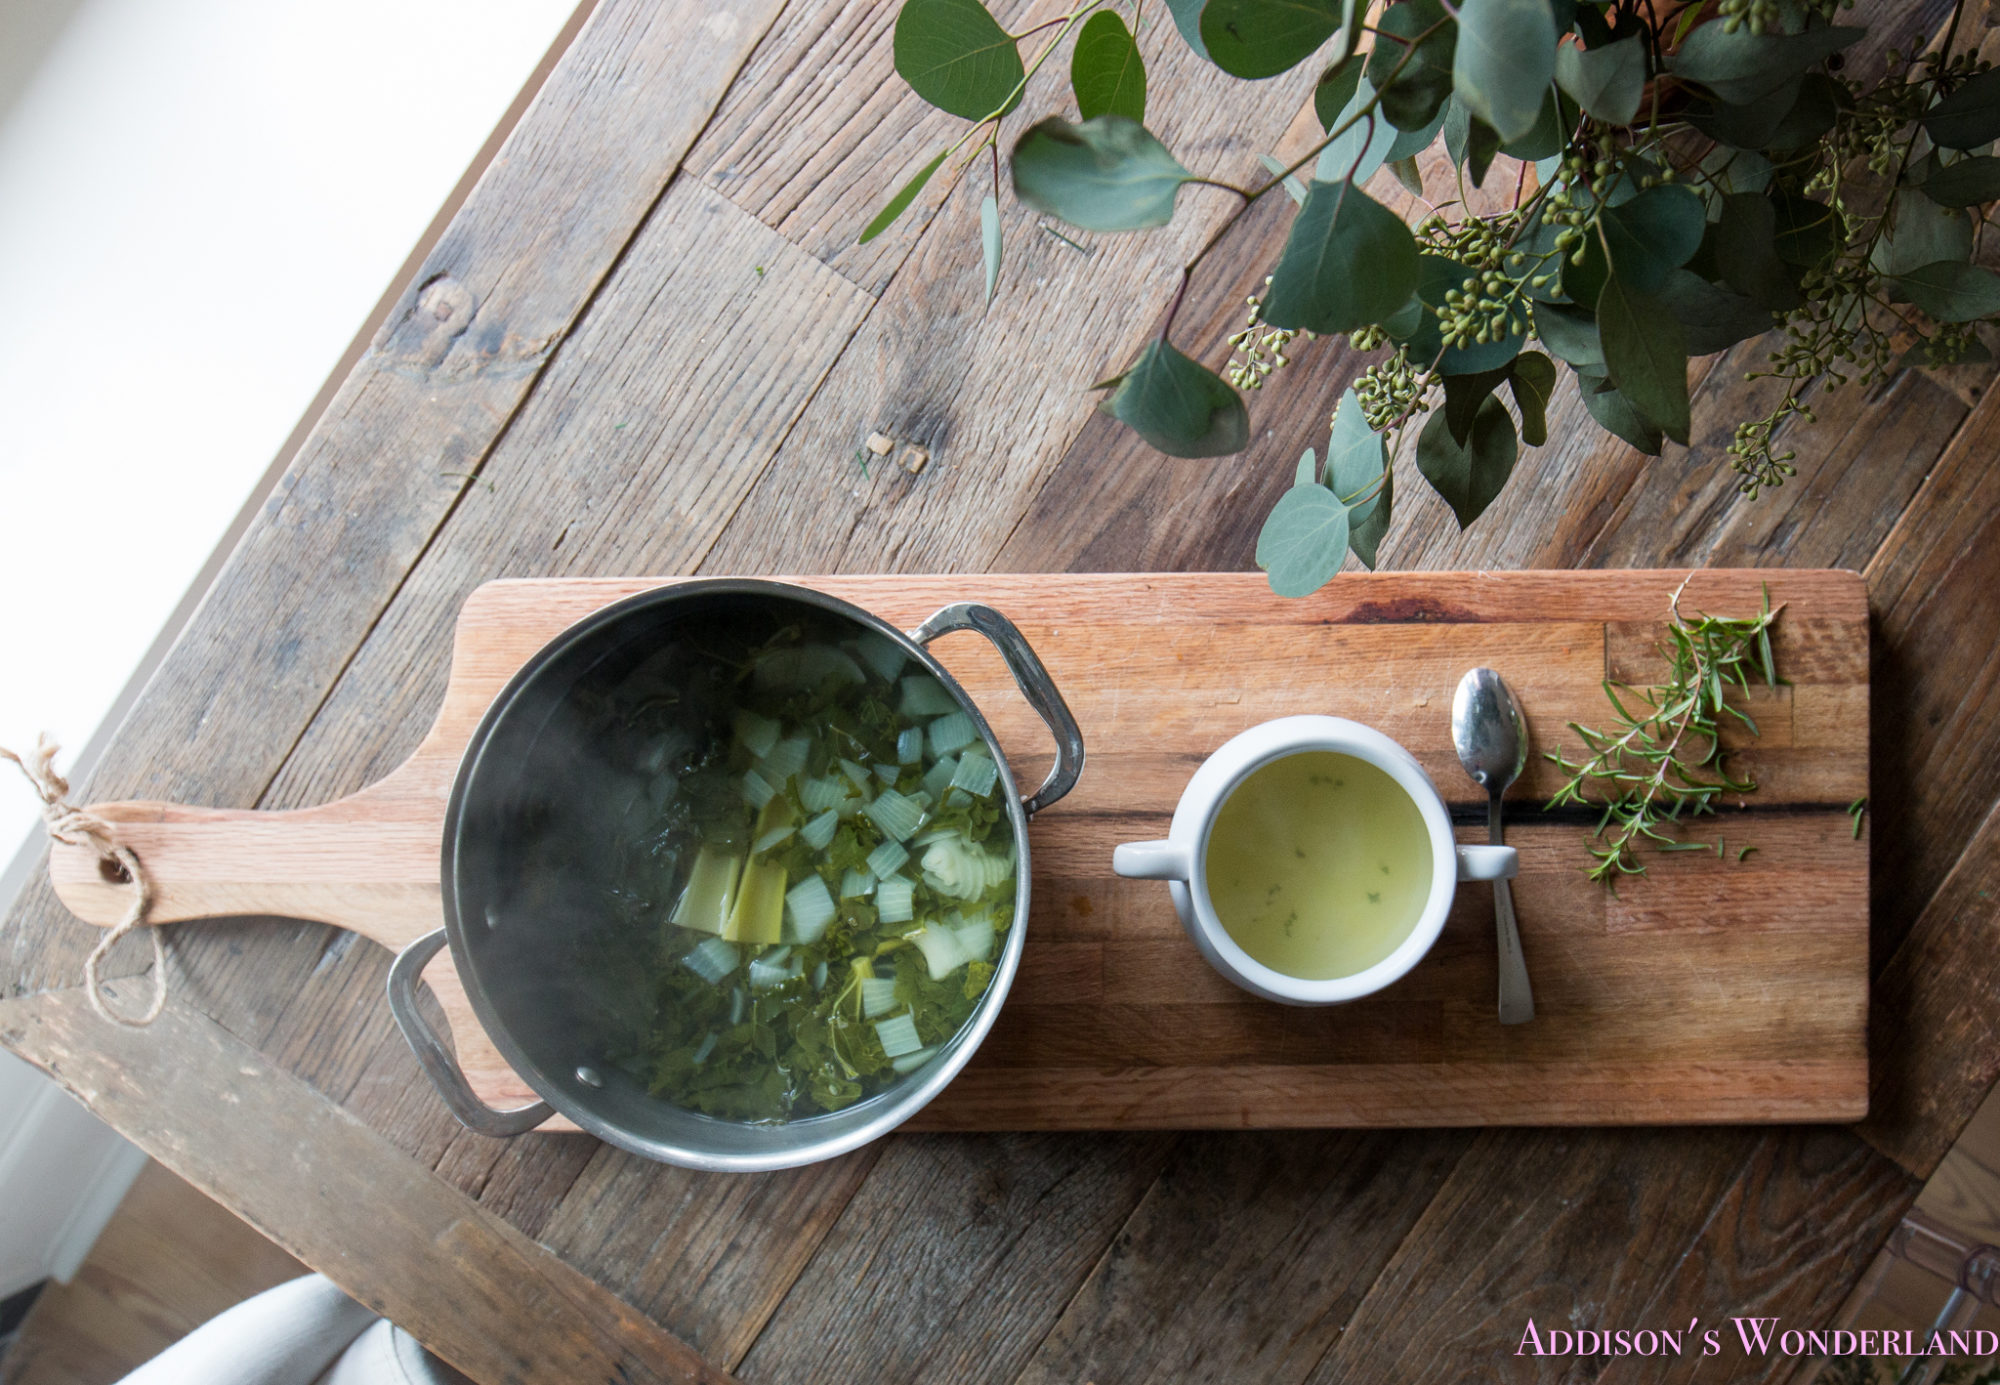 The Homemade Broth Cleanse I SWEAR by…